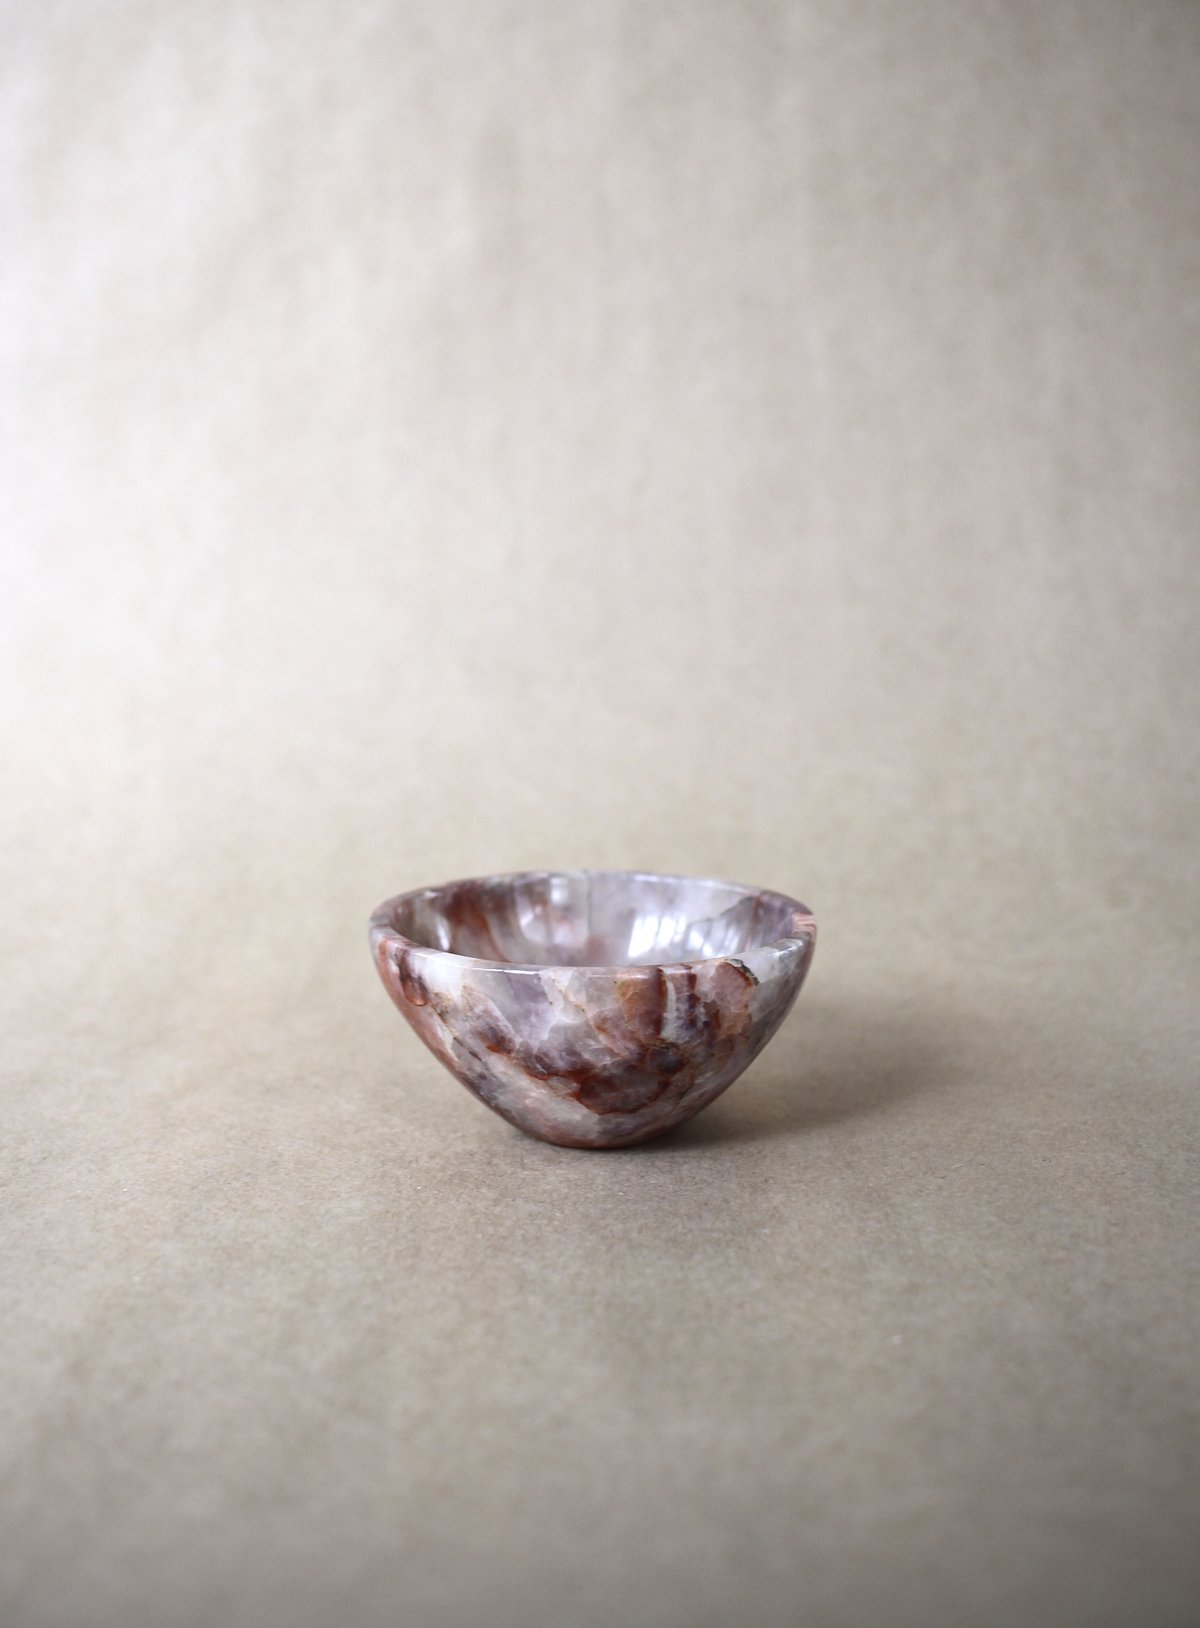 Small Amethyst Bowl.